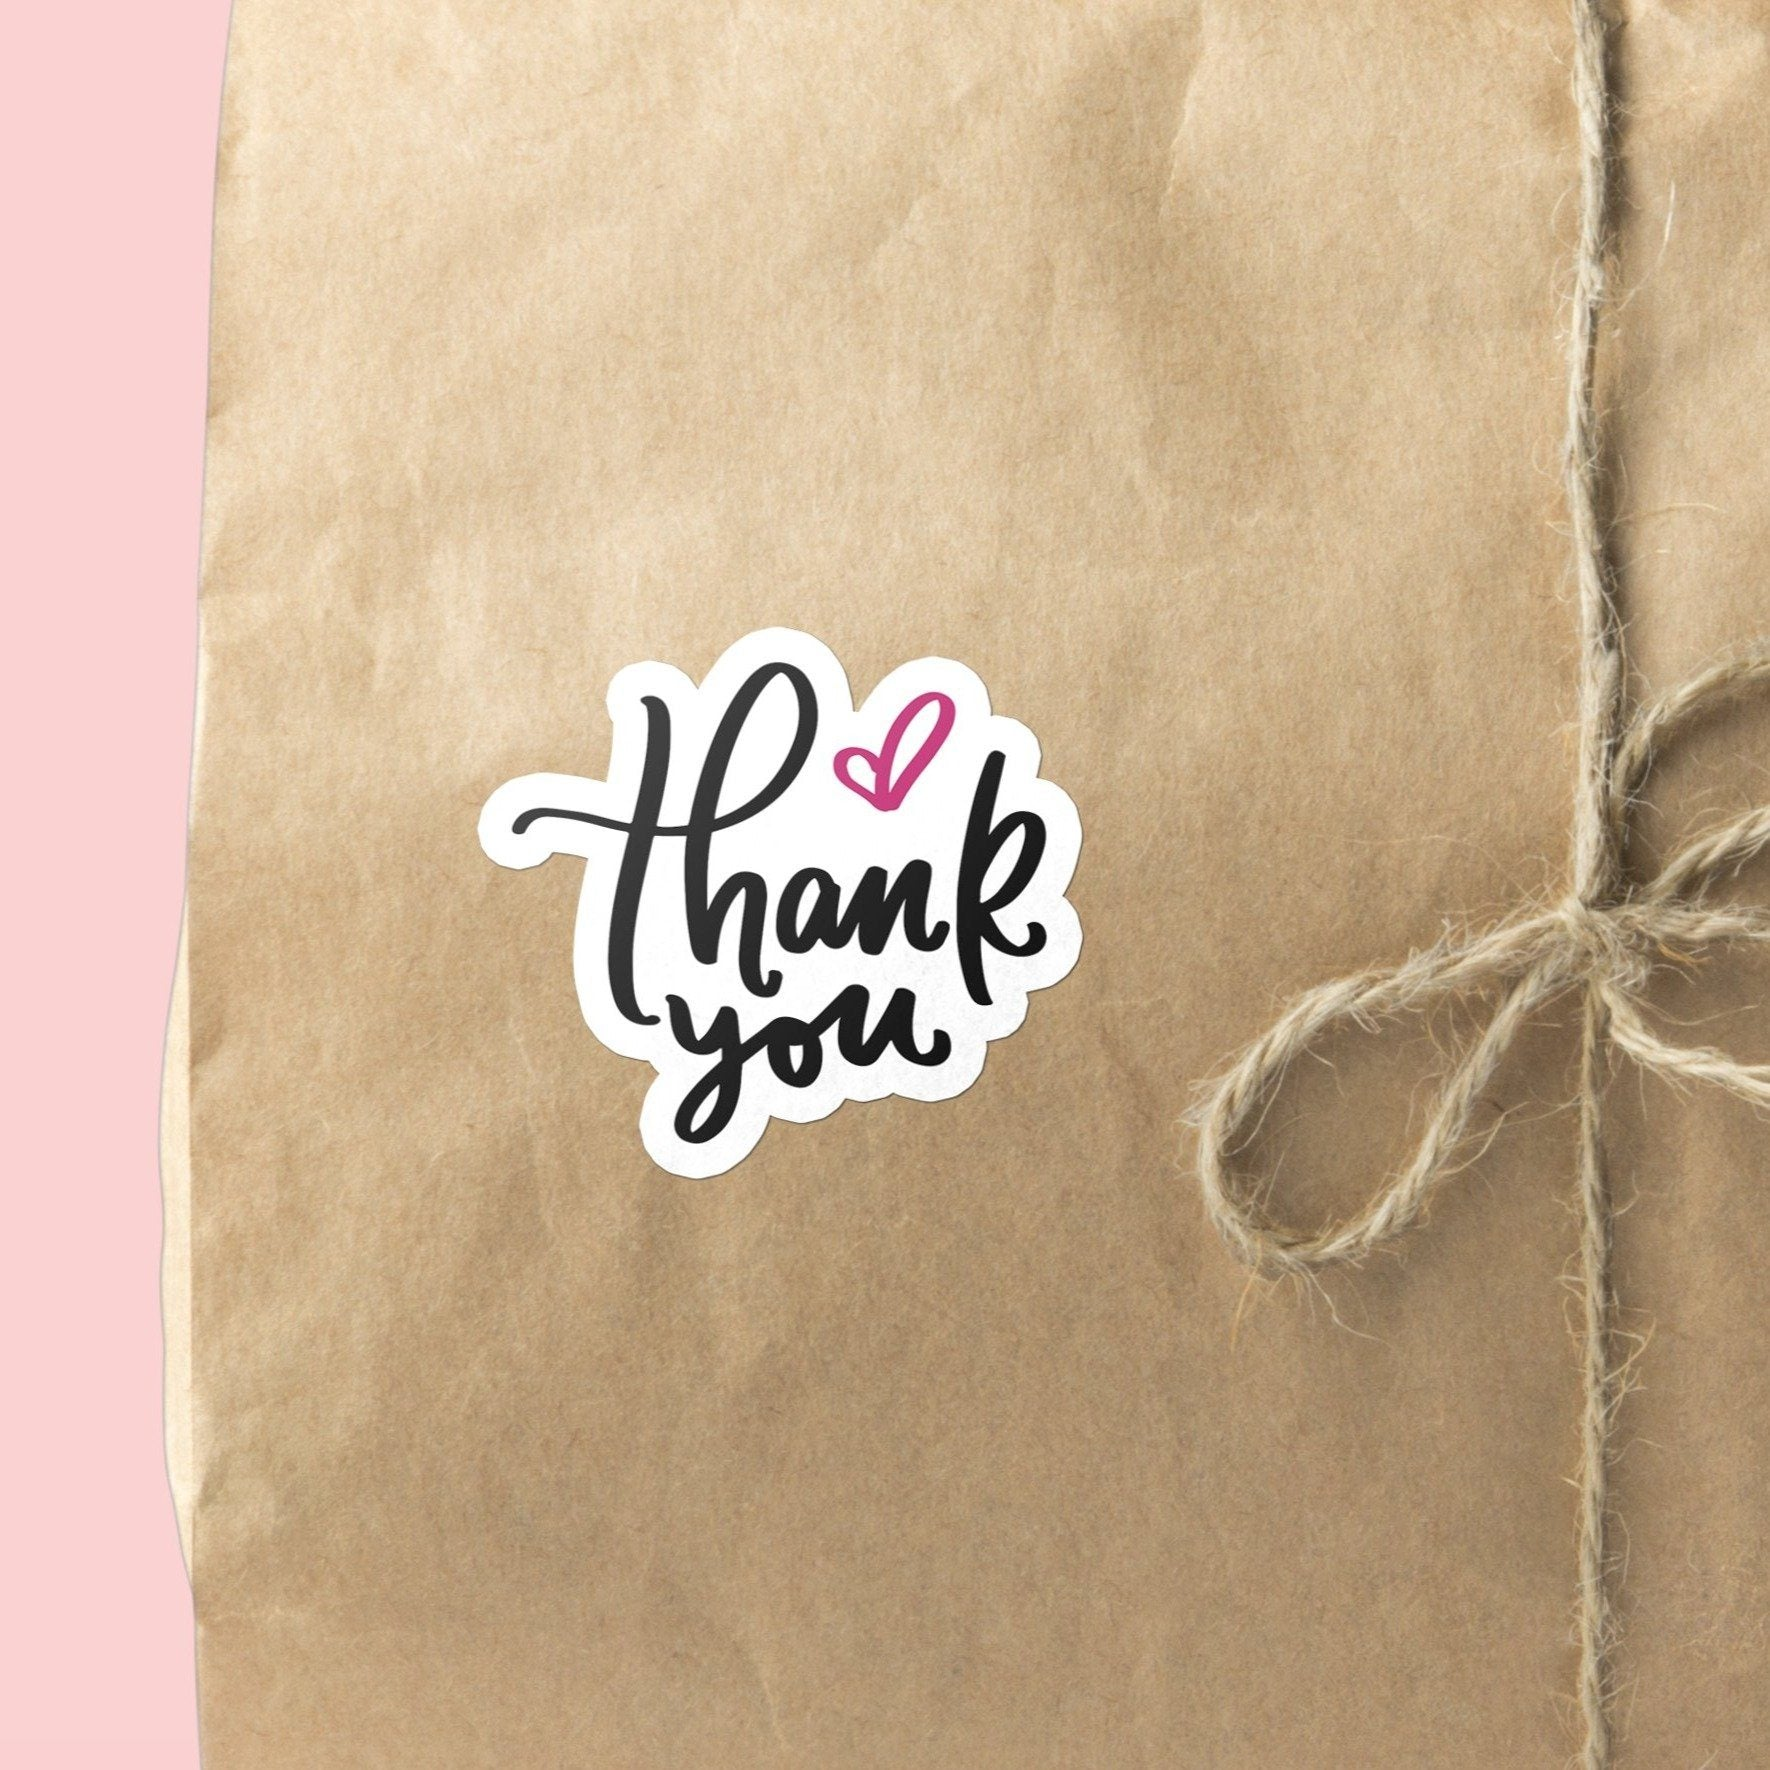 Thank You with Love Heart | 15 Die-Cut Happy Mail Stickers Happy Mail Stickers Sweet Backflip